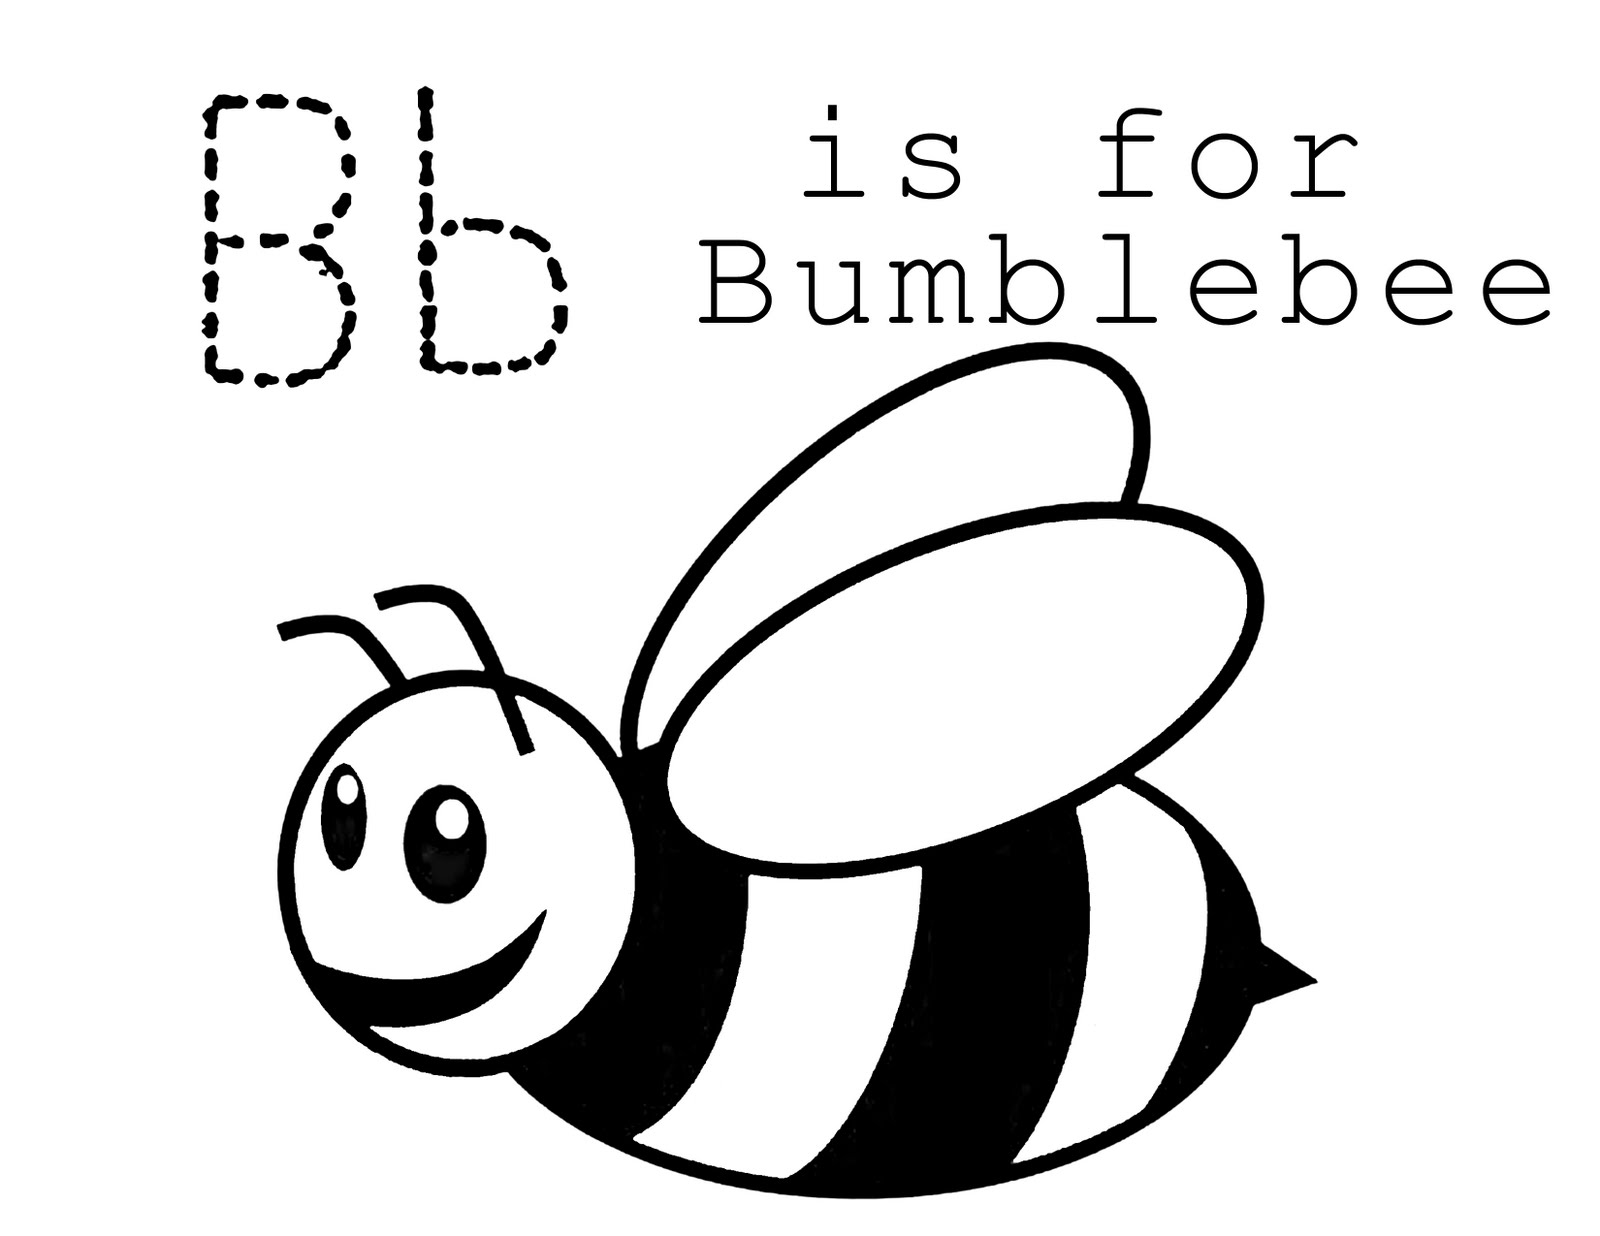 coloring pages with bees - photo#7